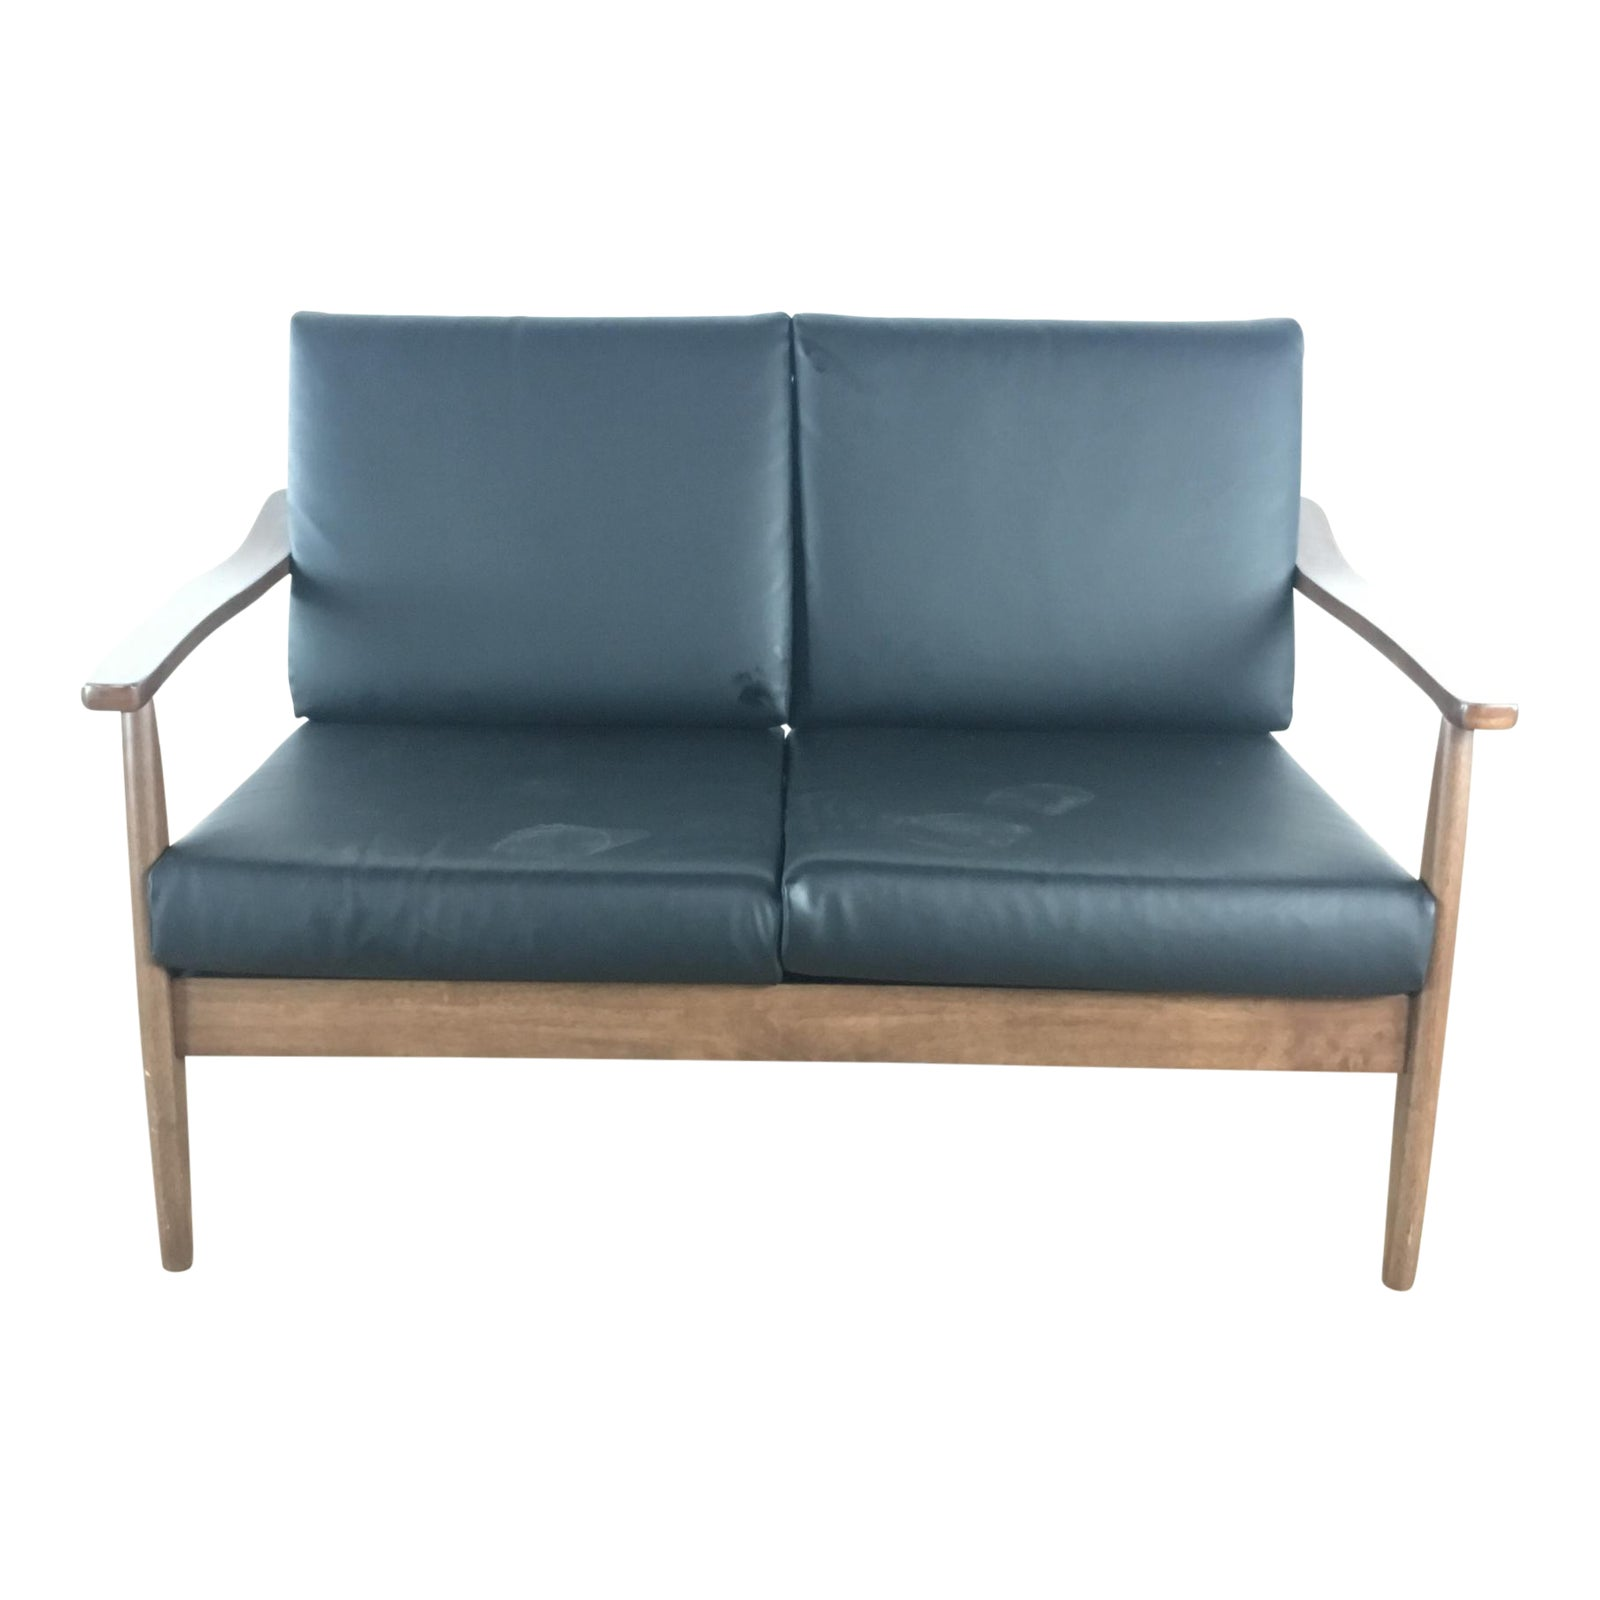 Mid century modern style two cushion leather upholstered wood sofa chairish